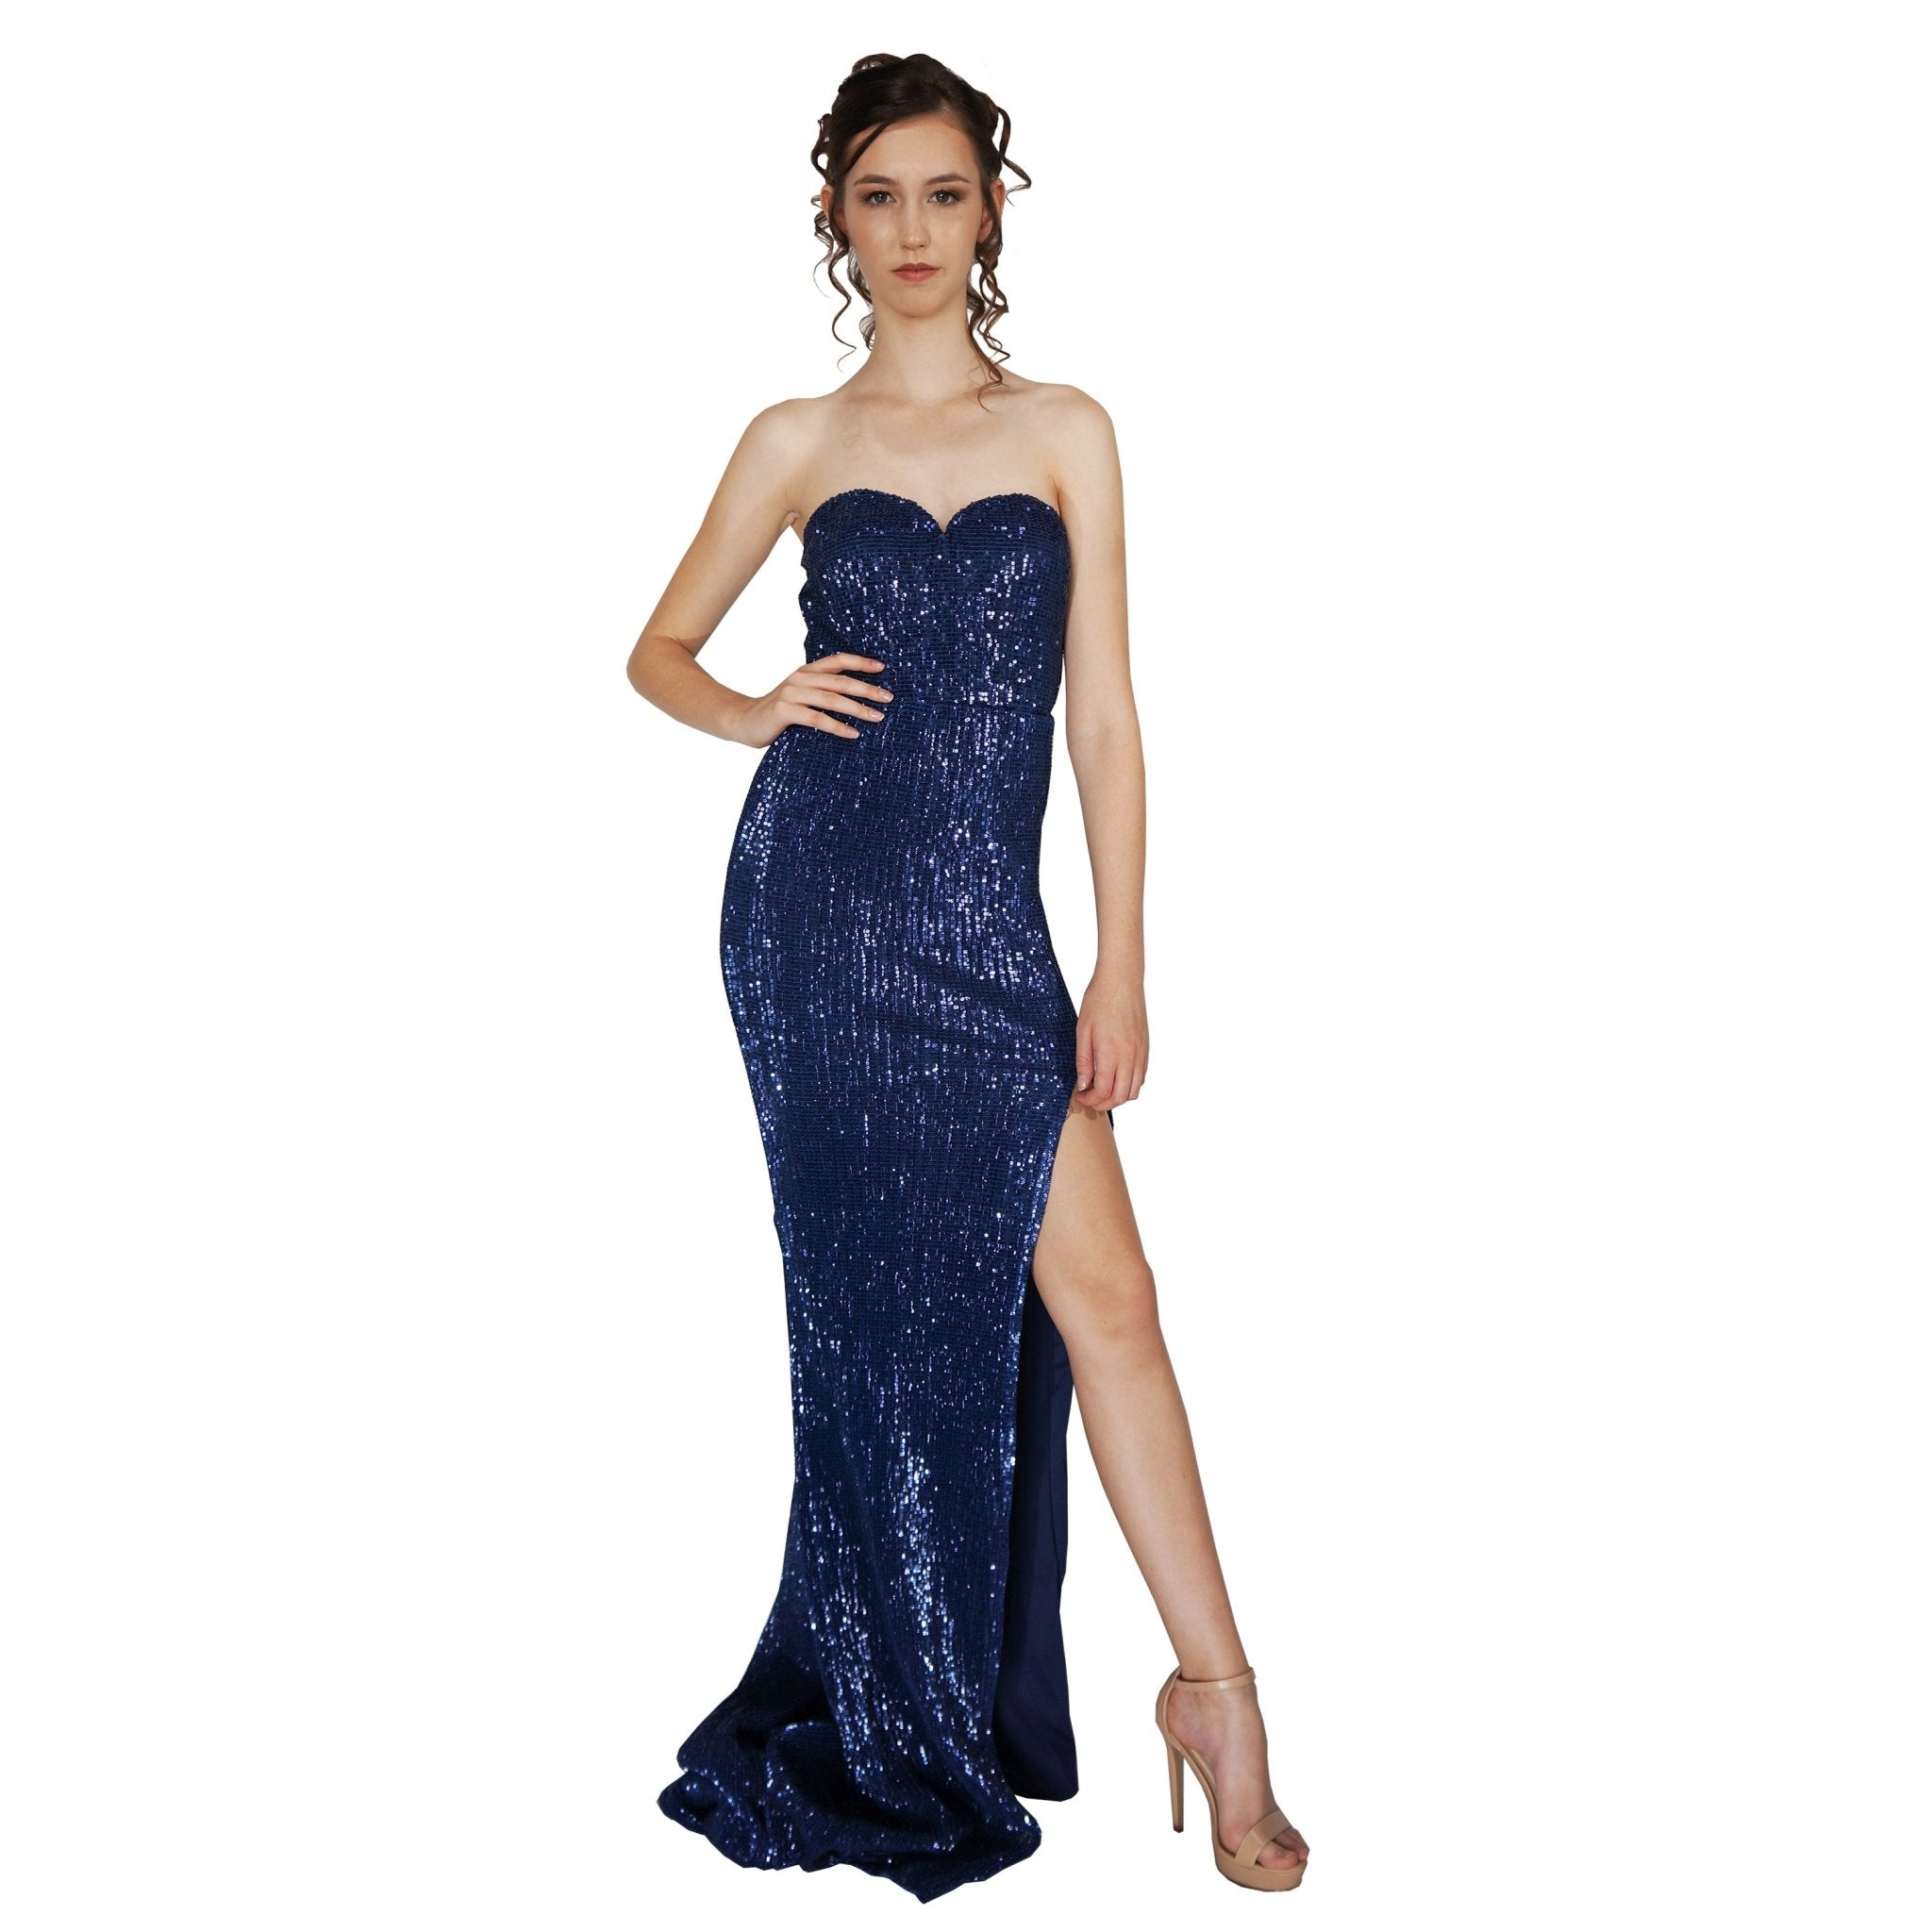 ESTELLE | Strapless Blue Sequin Evening Dress - All Products Envious Bridal